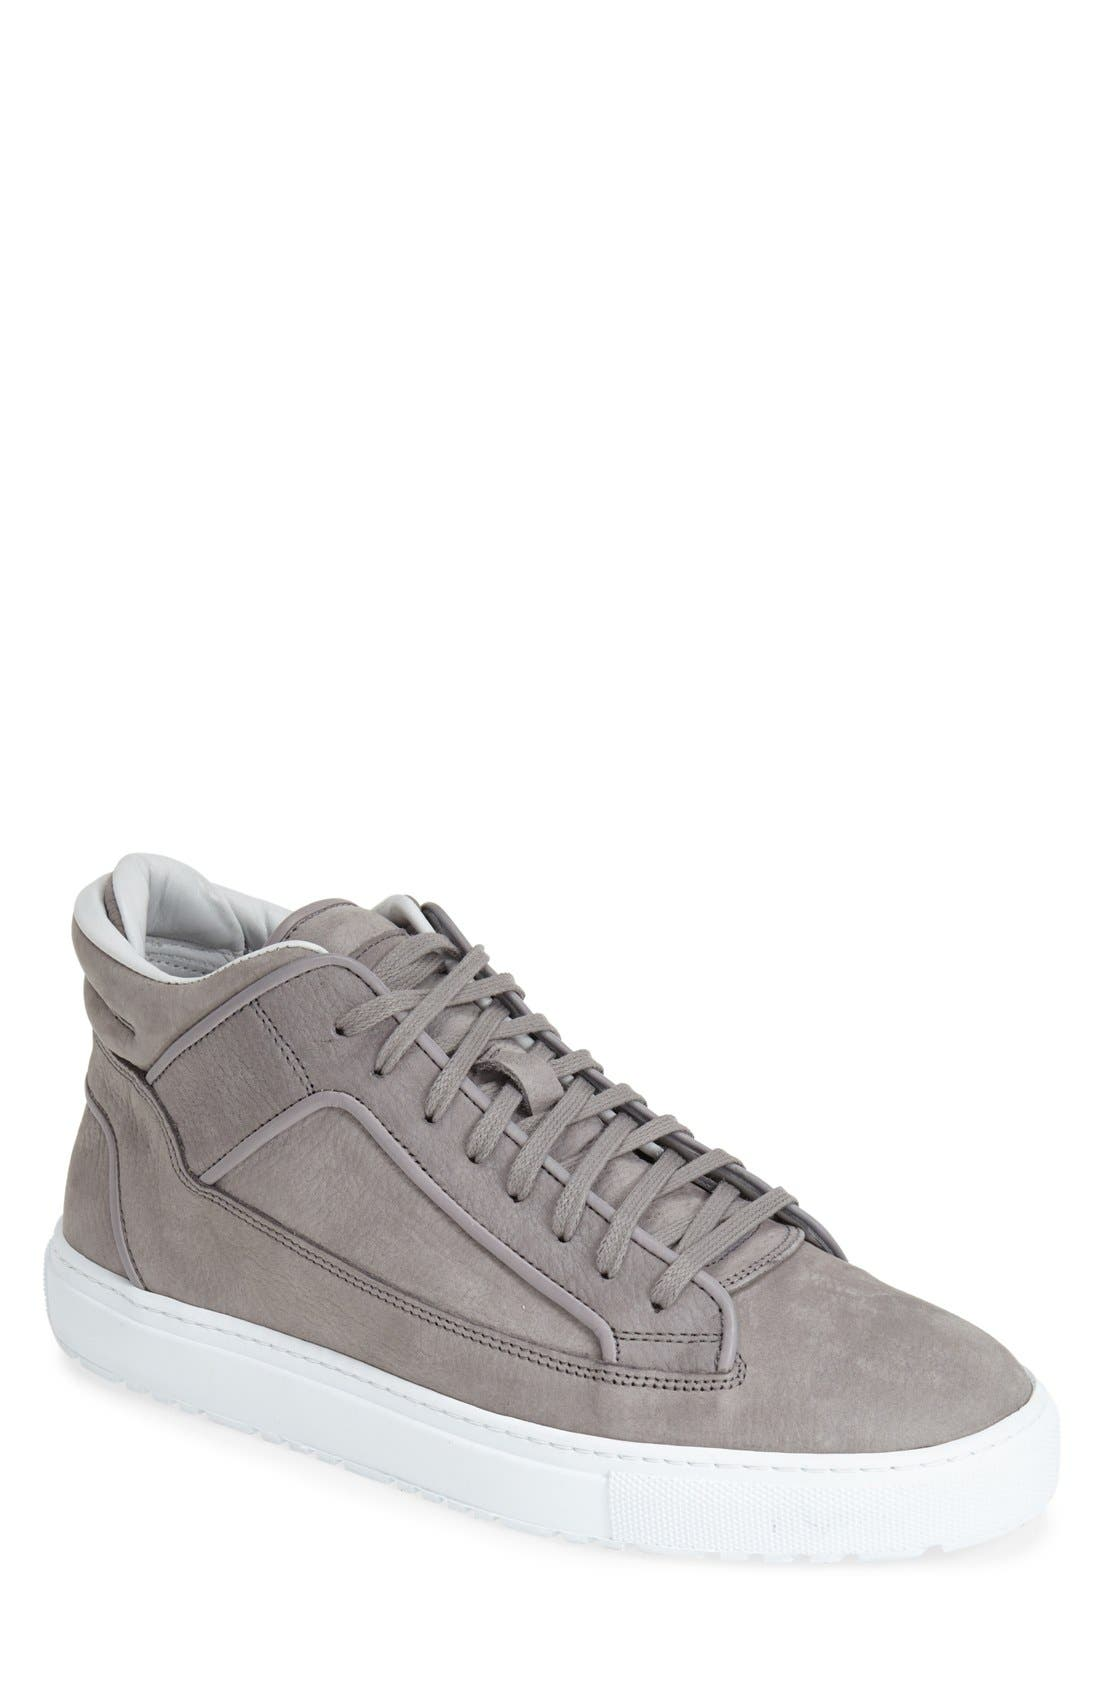 Leather Mid Top Sneaker,                             Main thumbnail 1, color,                             032